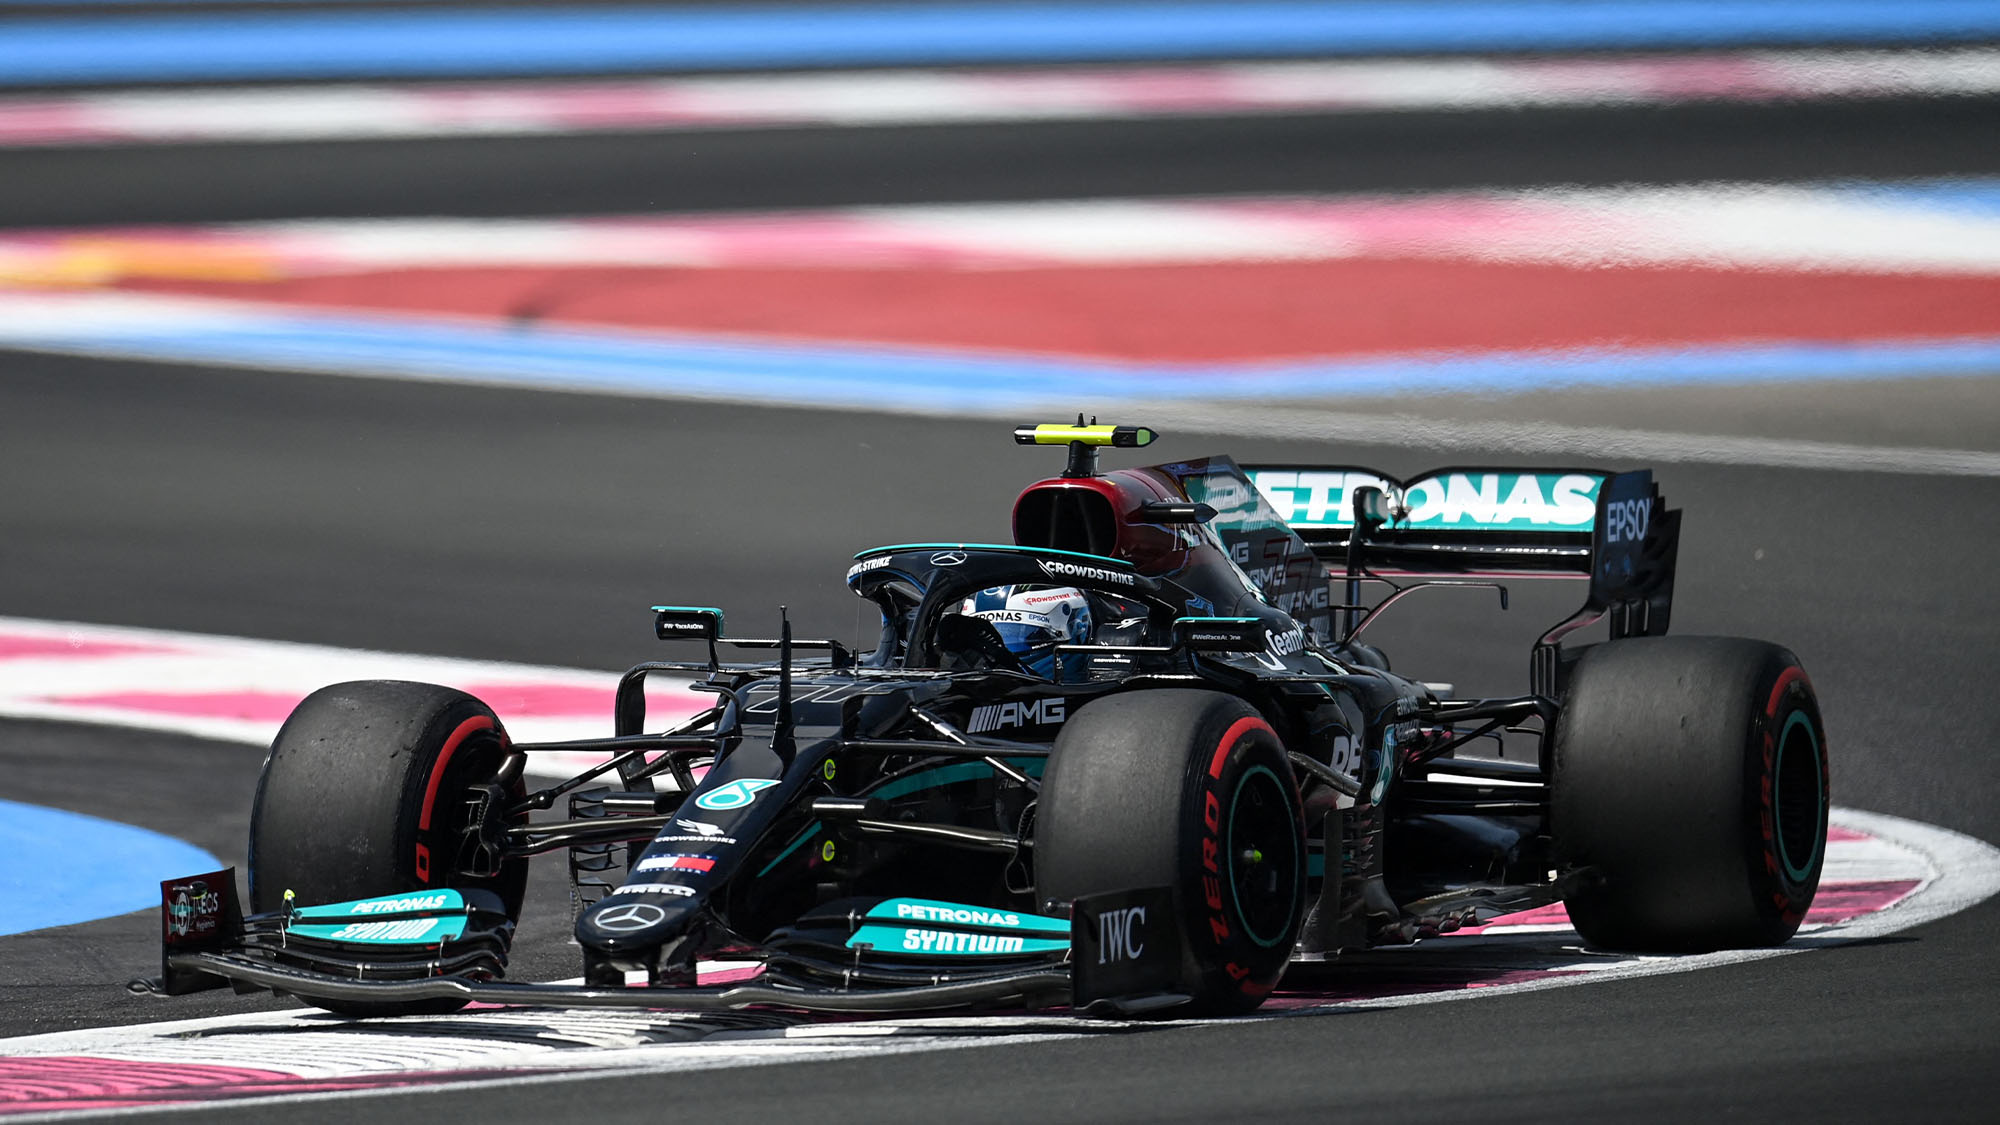 TOPSHOT - Mercedes' Finnish driver Valtteri Bottas drives during the first practice session at the Circuit Paul-Ricard in Le Castellet, southern France, on June 18, 2021, two days ahead of the French Formula One Grand Prix. (Photo by CHRISTOPHE SIMON / AFP) (Photo by CHRISTOPHE SIMON/AFP via Getty Images)